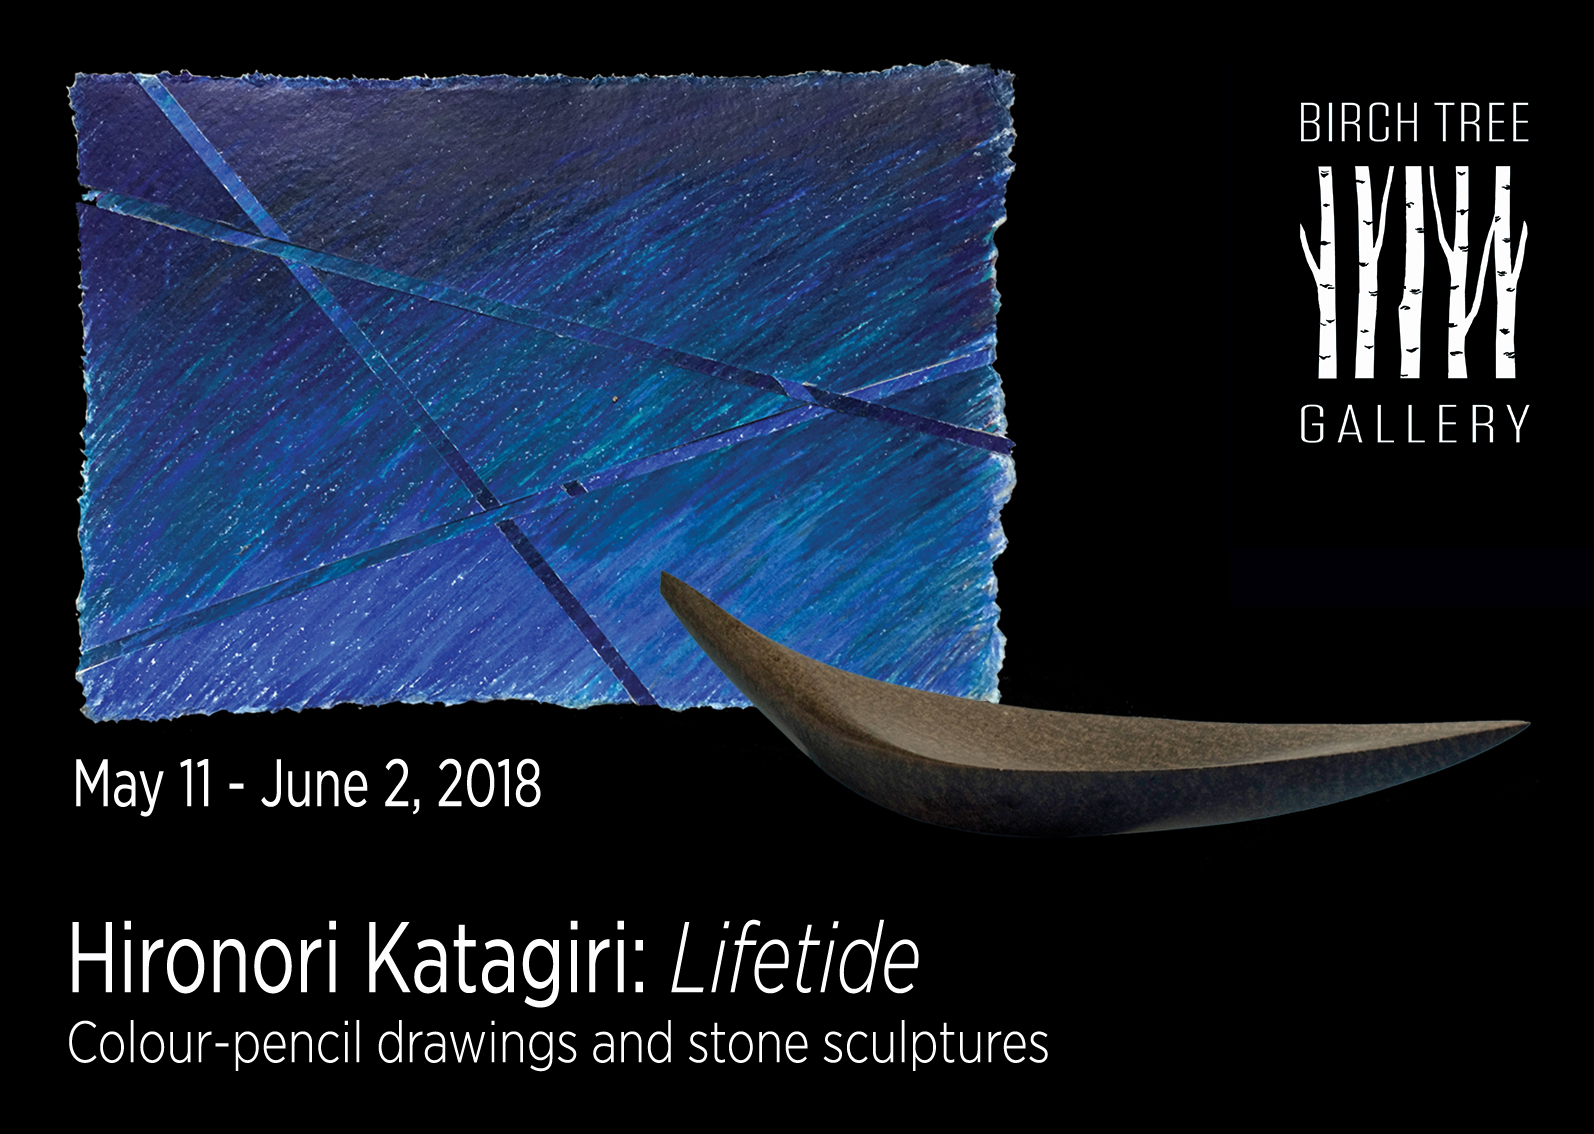 Hironori Katagiri 'Lifetide' at Birch Tree Gallery